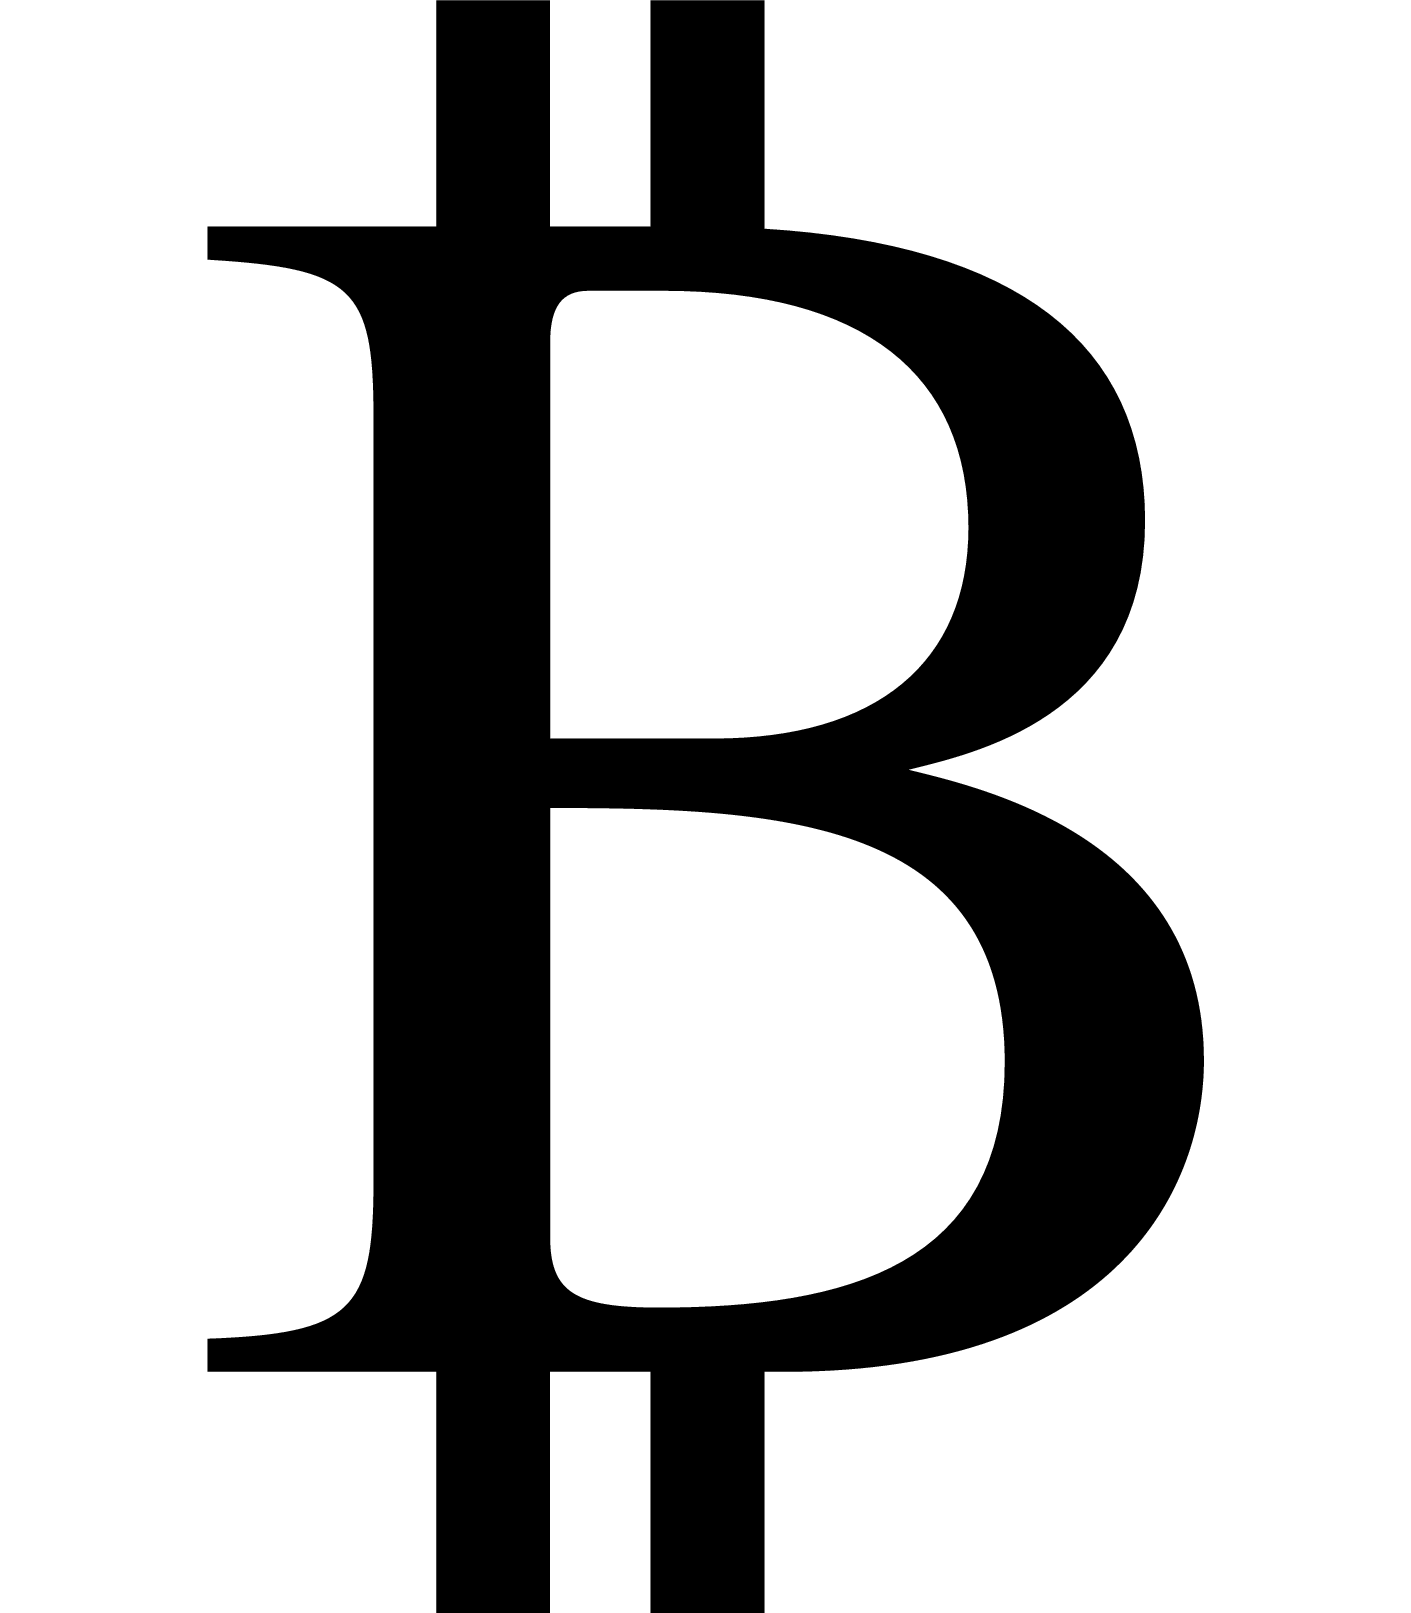 Symbol Futures Bitcoin Contract Unicode Ticker PNG Image